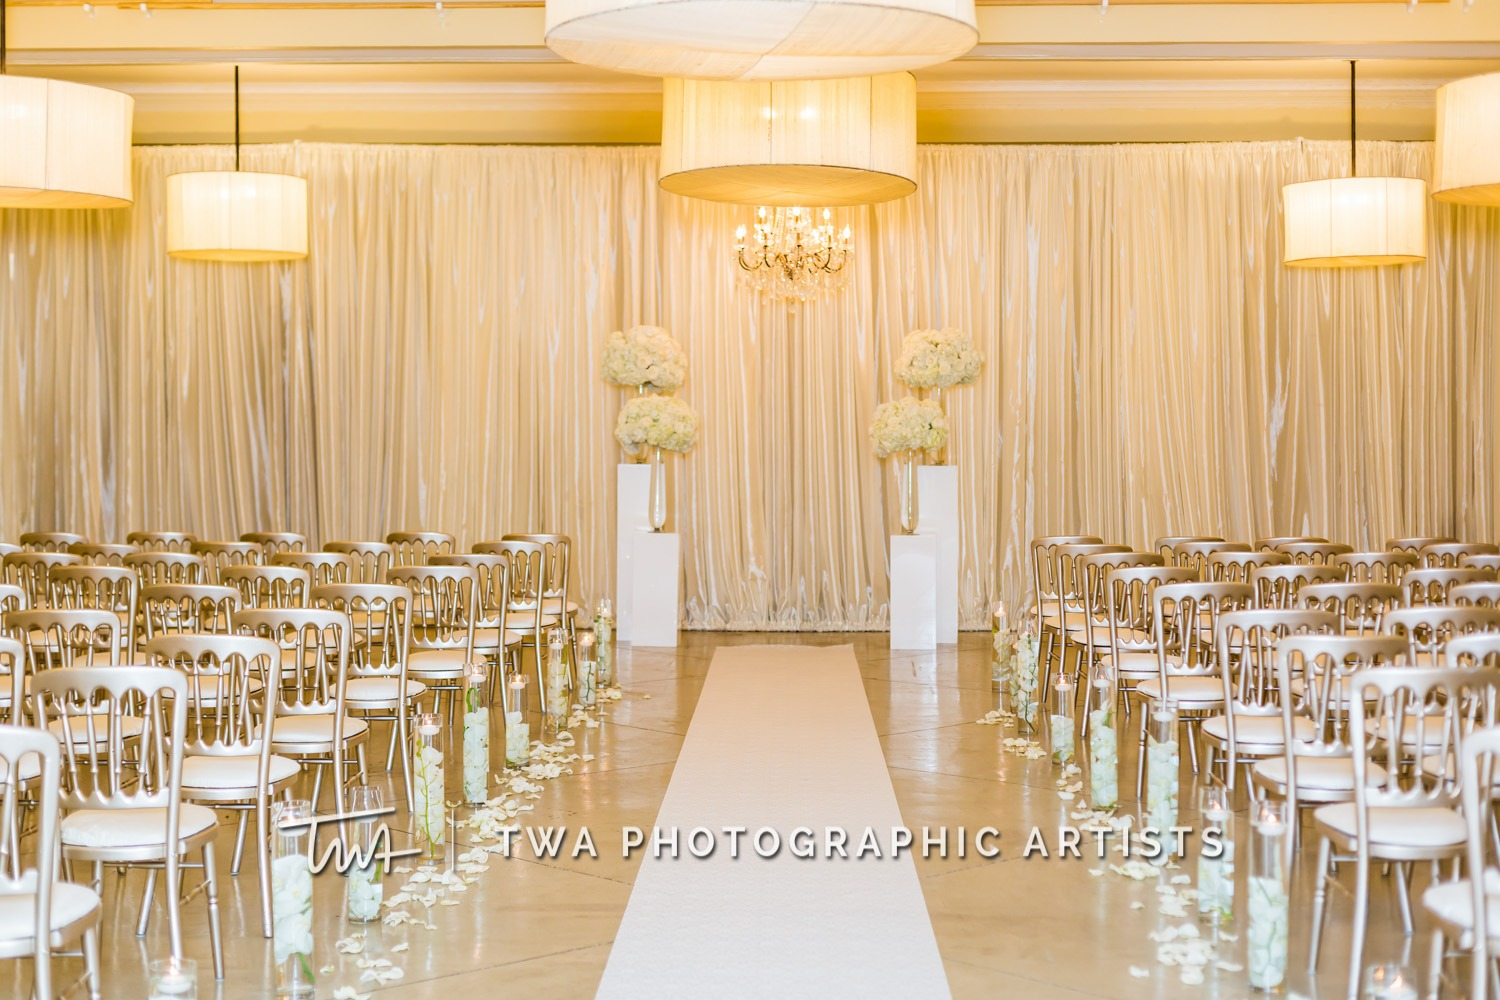 Chicago-Wedding-Photographer-TWA-Photographic-Artists-Stan-Mansion_Ityavyar_Oakley_MJ-0225-1